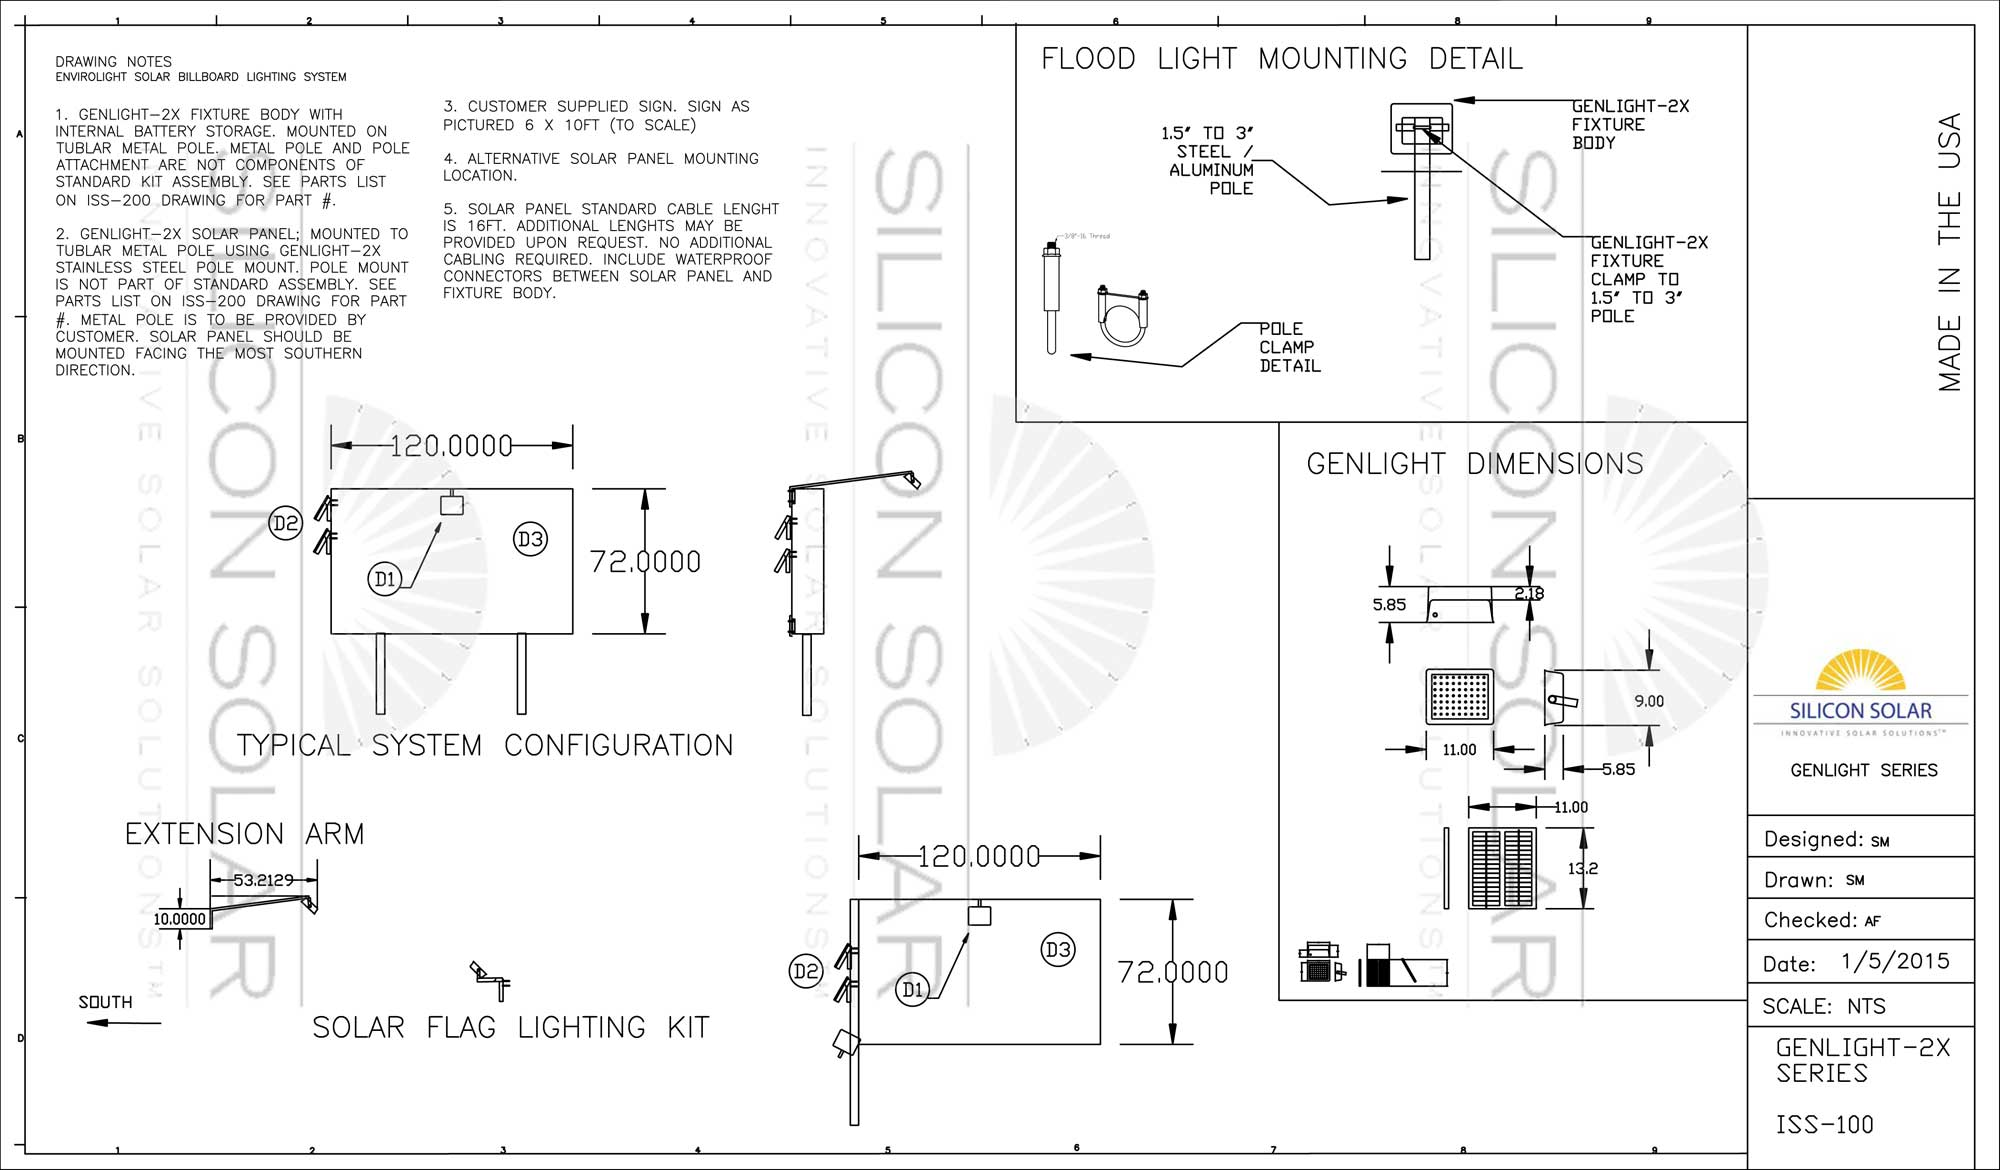 GenLight Mounting CAD Drawing & Submittal